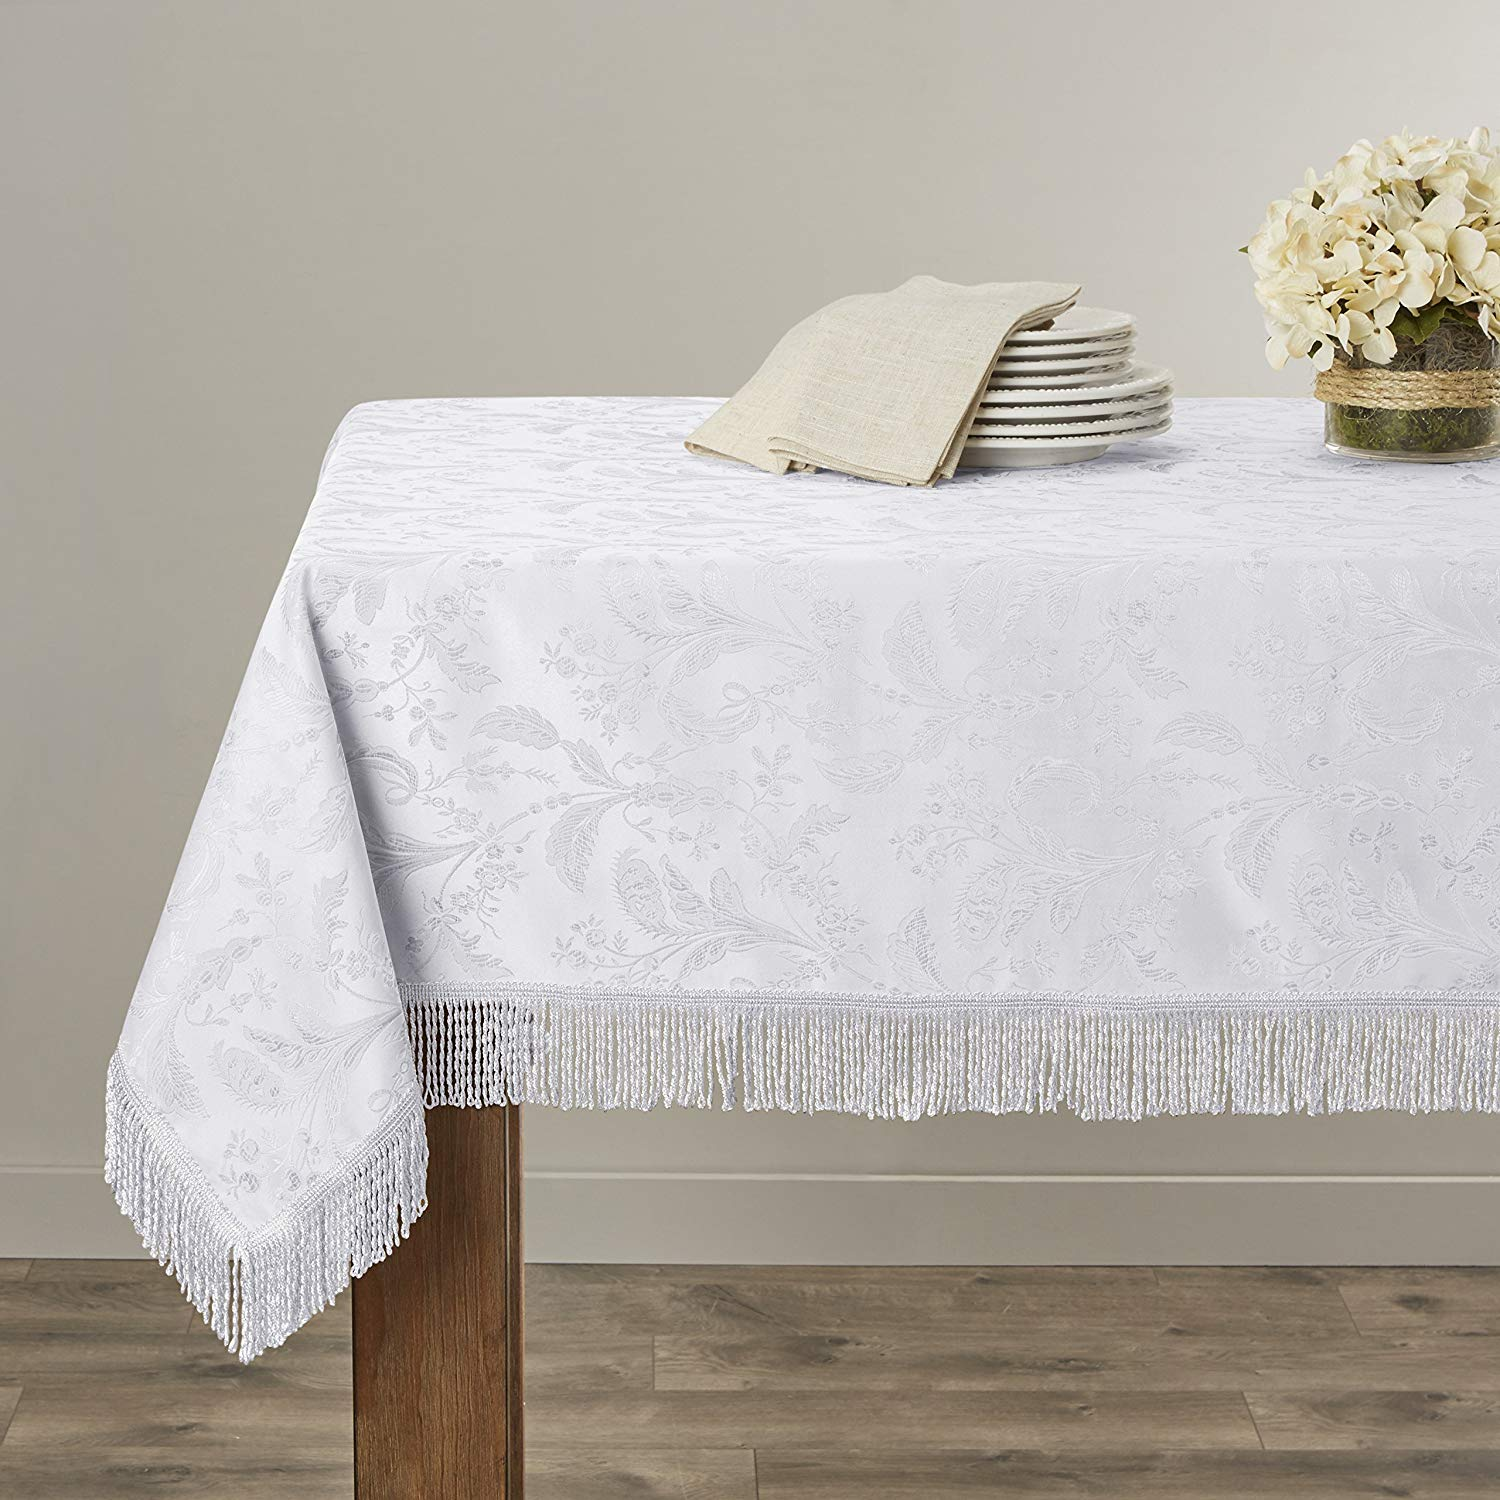 "Violet Linen Luxury Damask Design Oblong/Rectangle Tablecloth, 60"" x 160"", White"